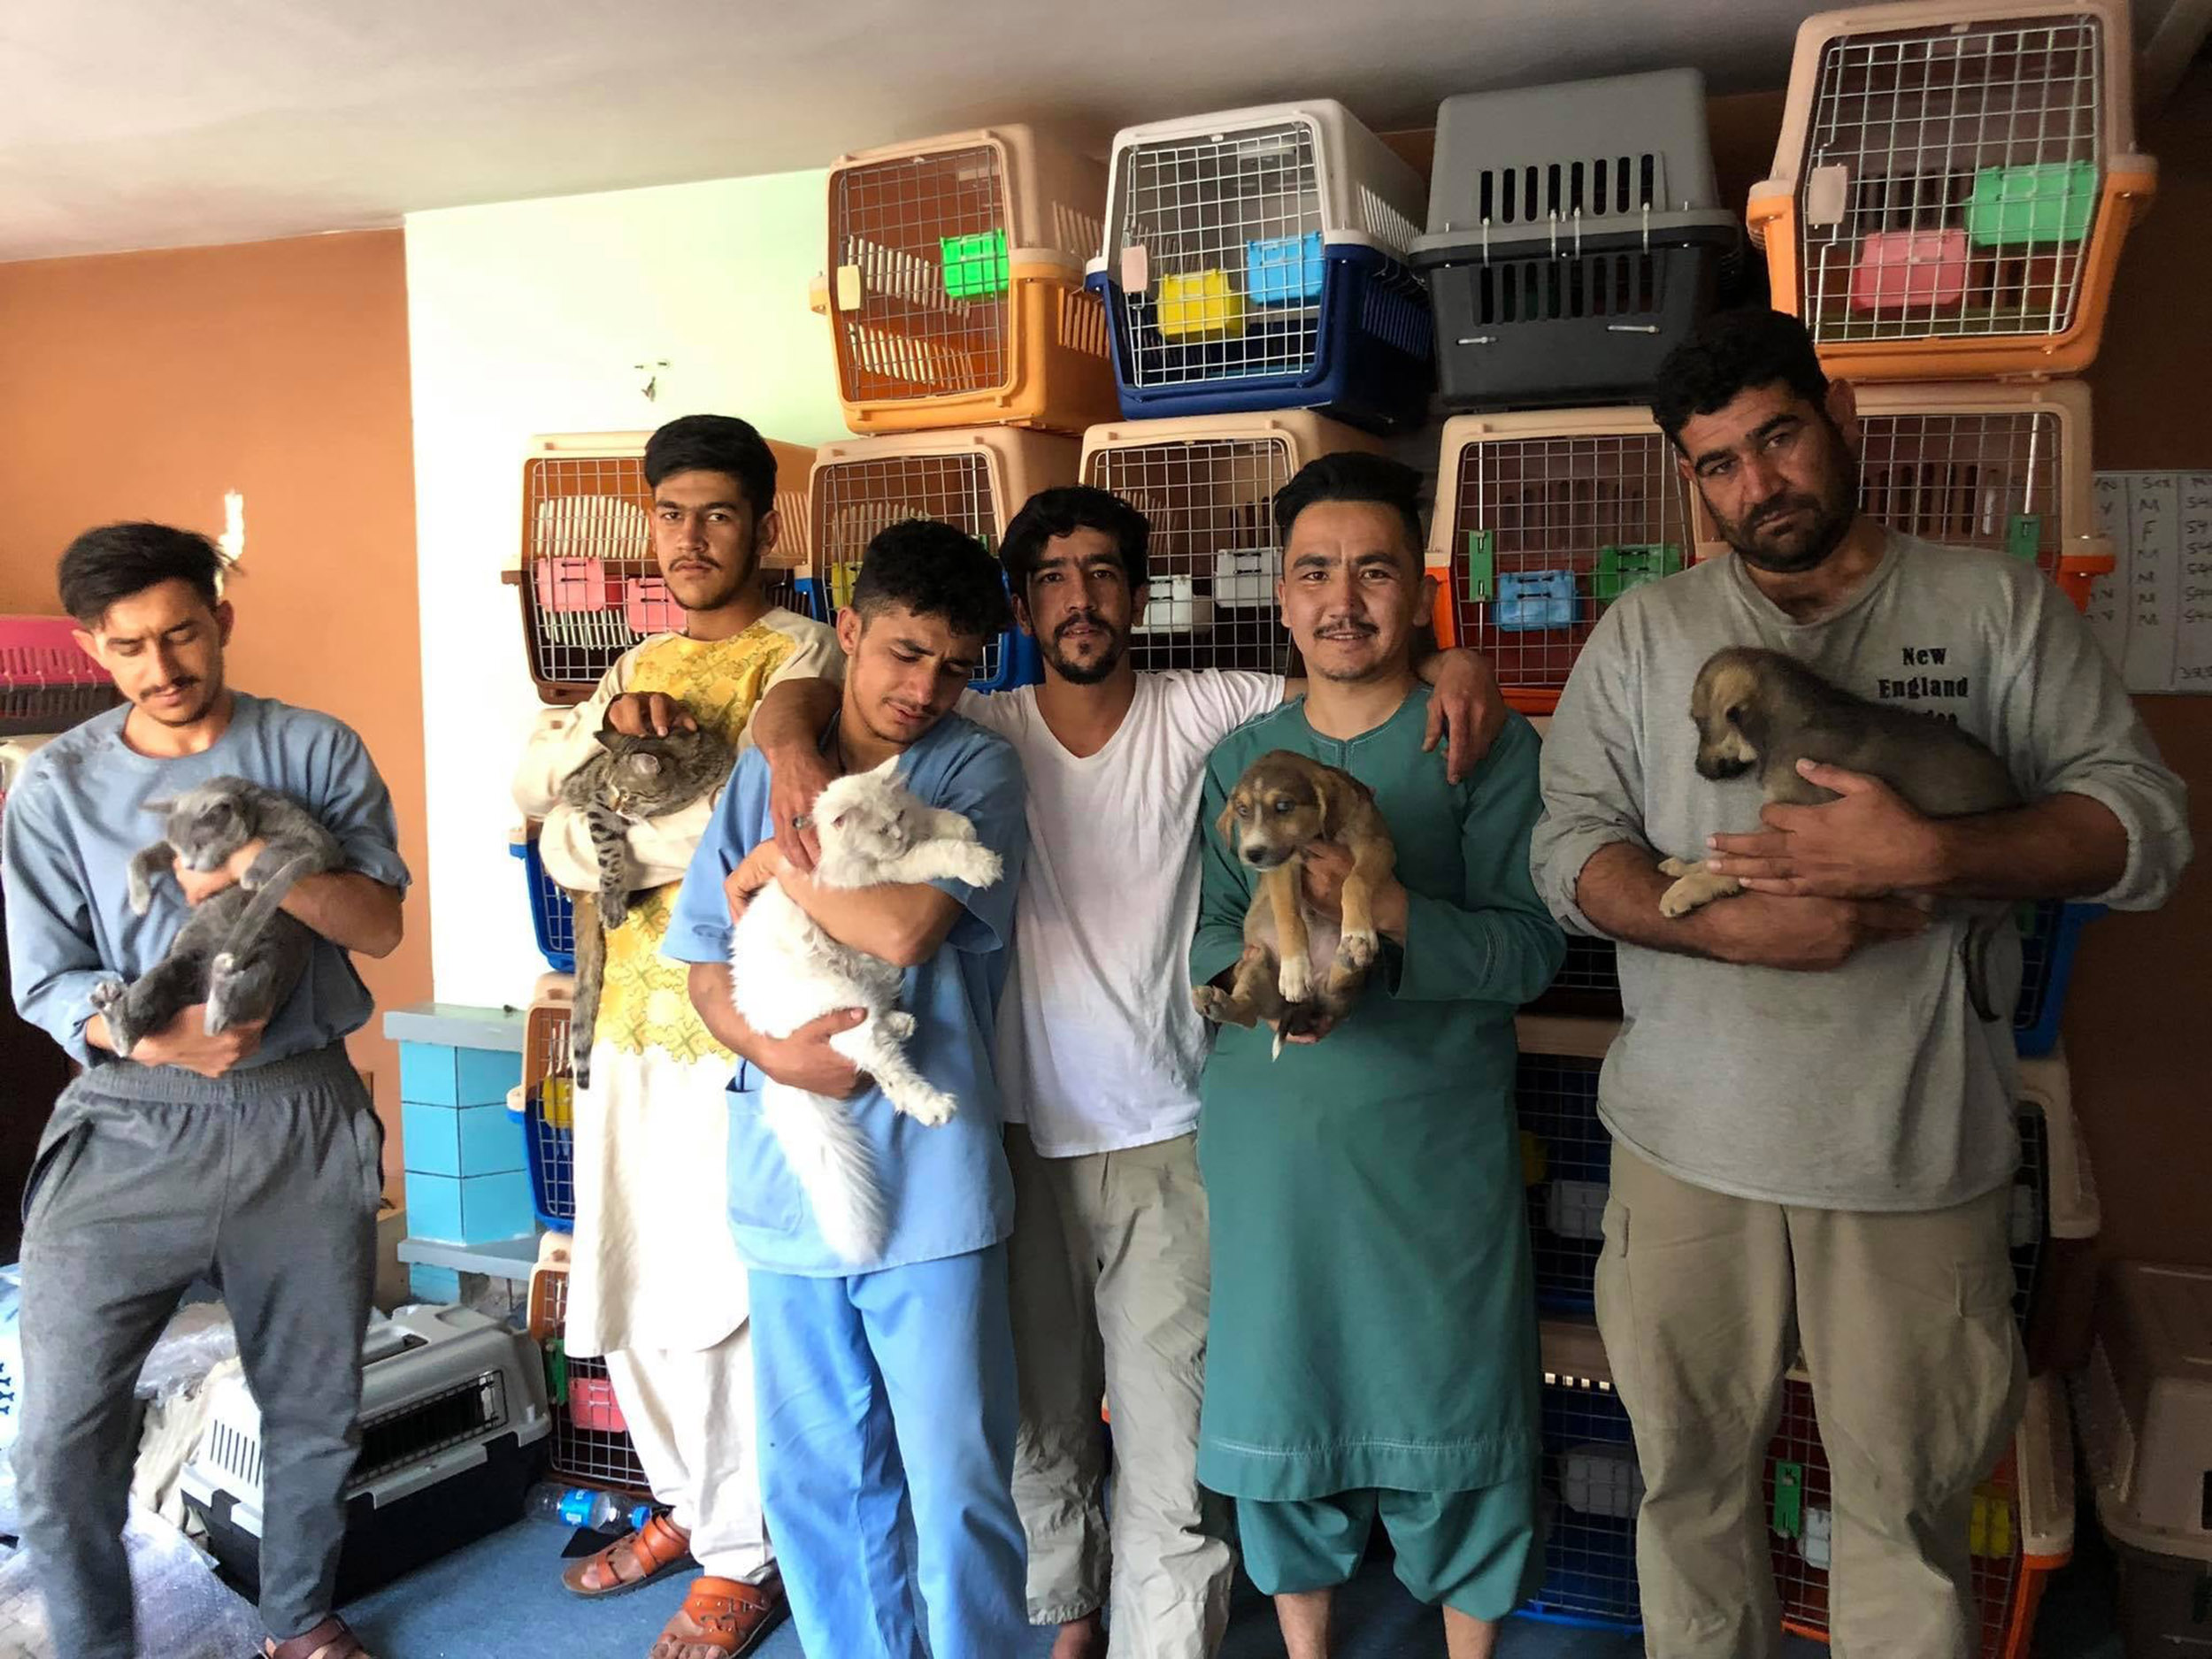 'It would be like leaving my family': Animal rescue workers refuse to leave Afghanistan